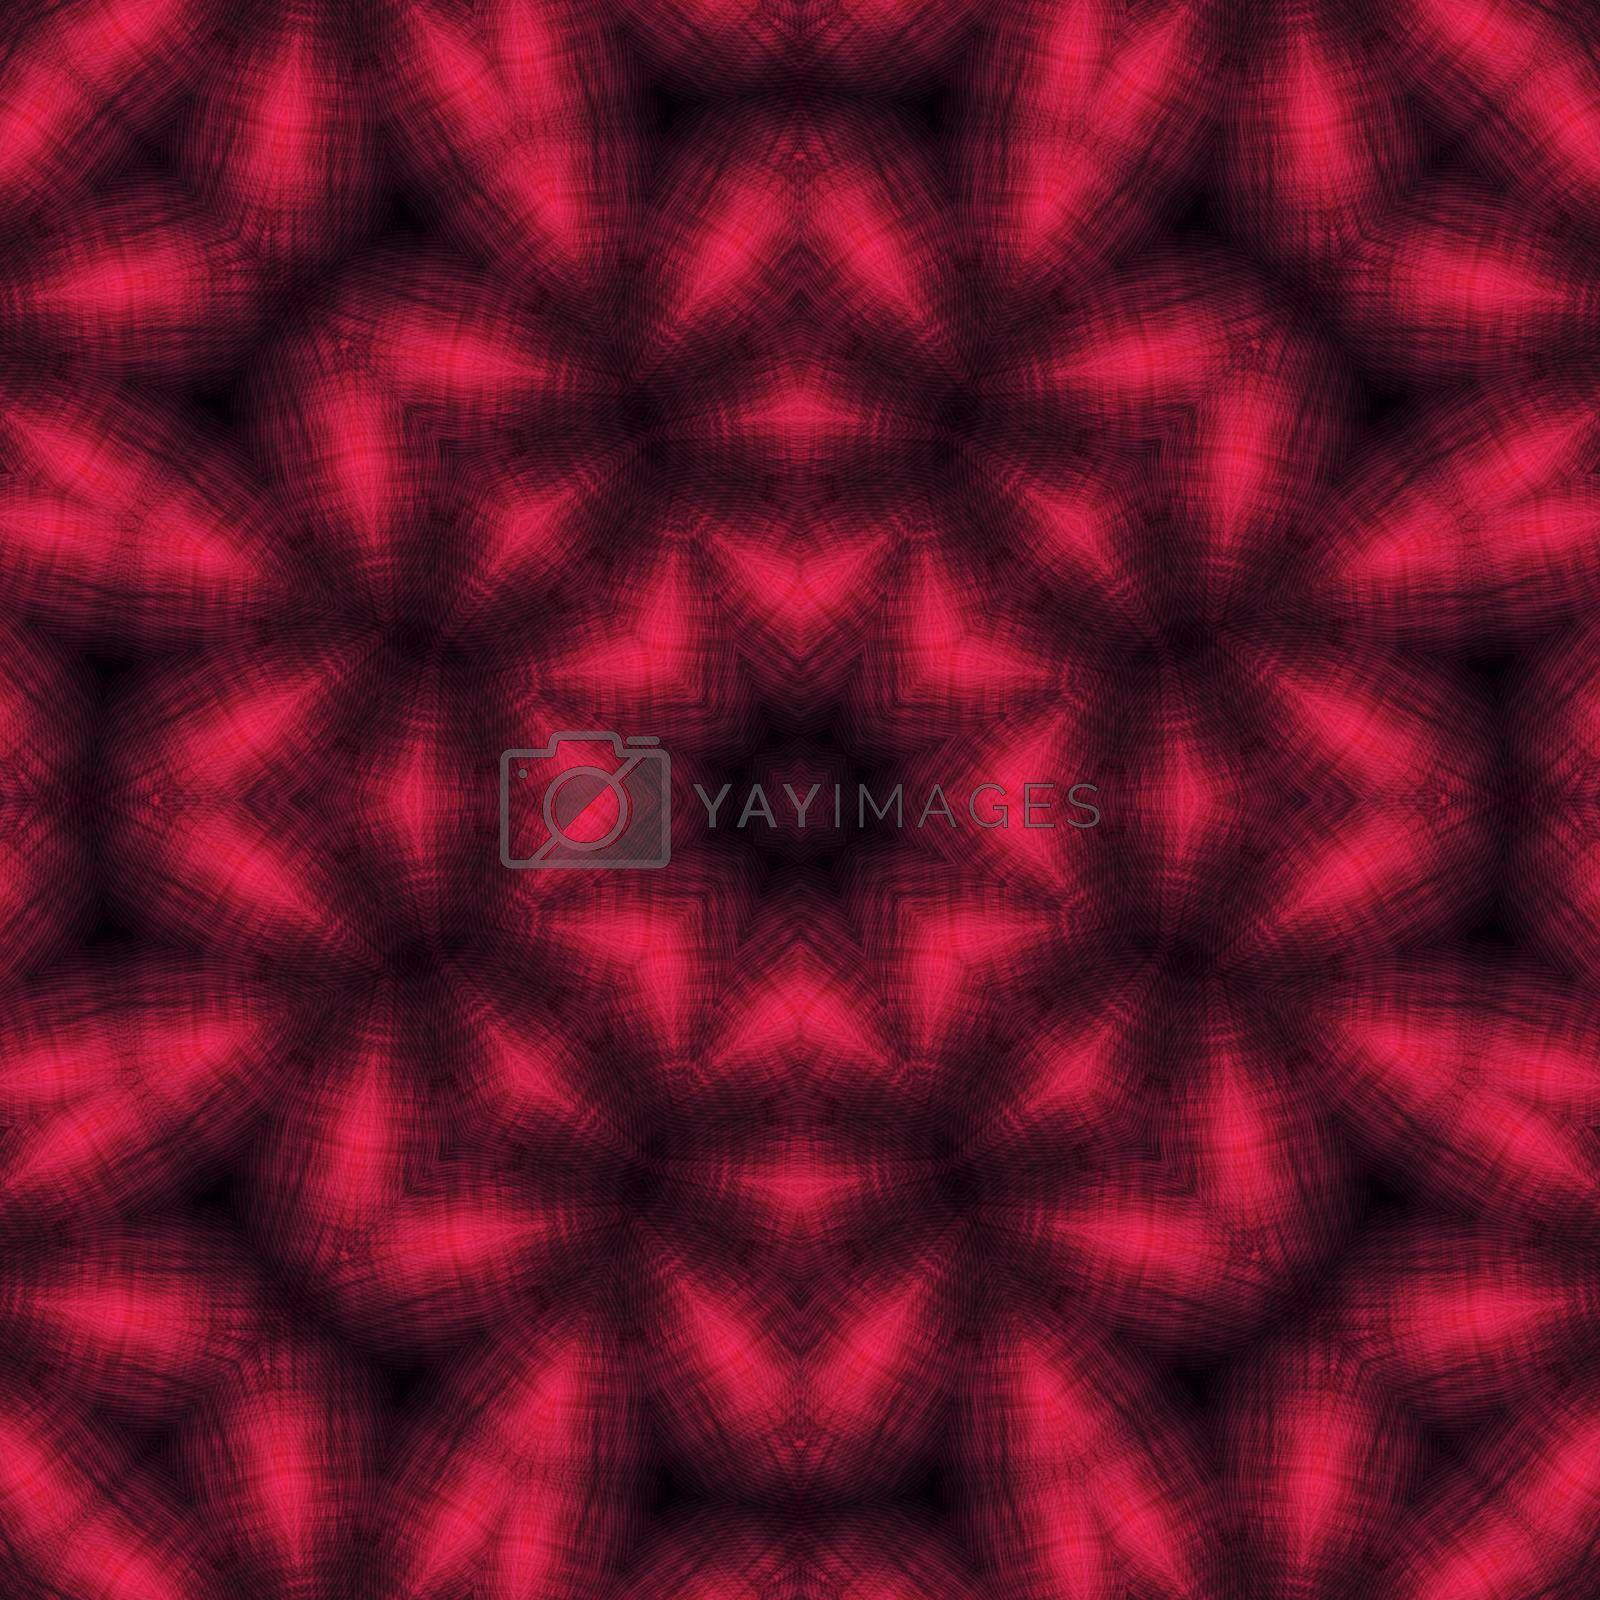 Abstract background with bright spot pattern